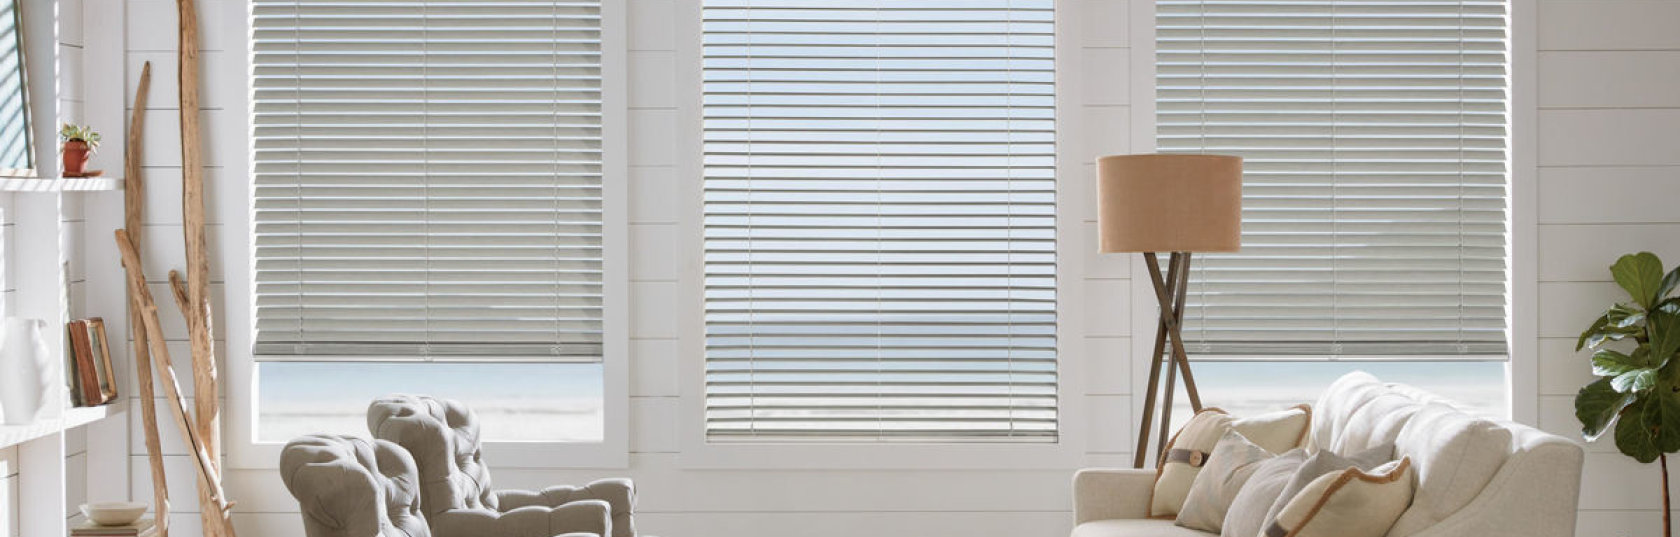 How to define your space with designer blinds